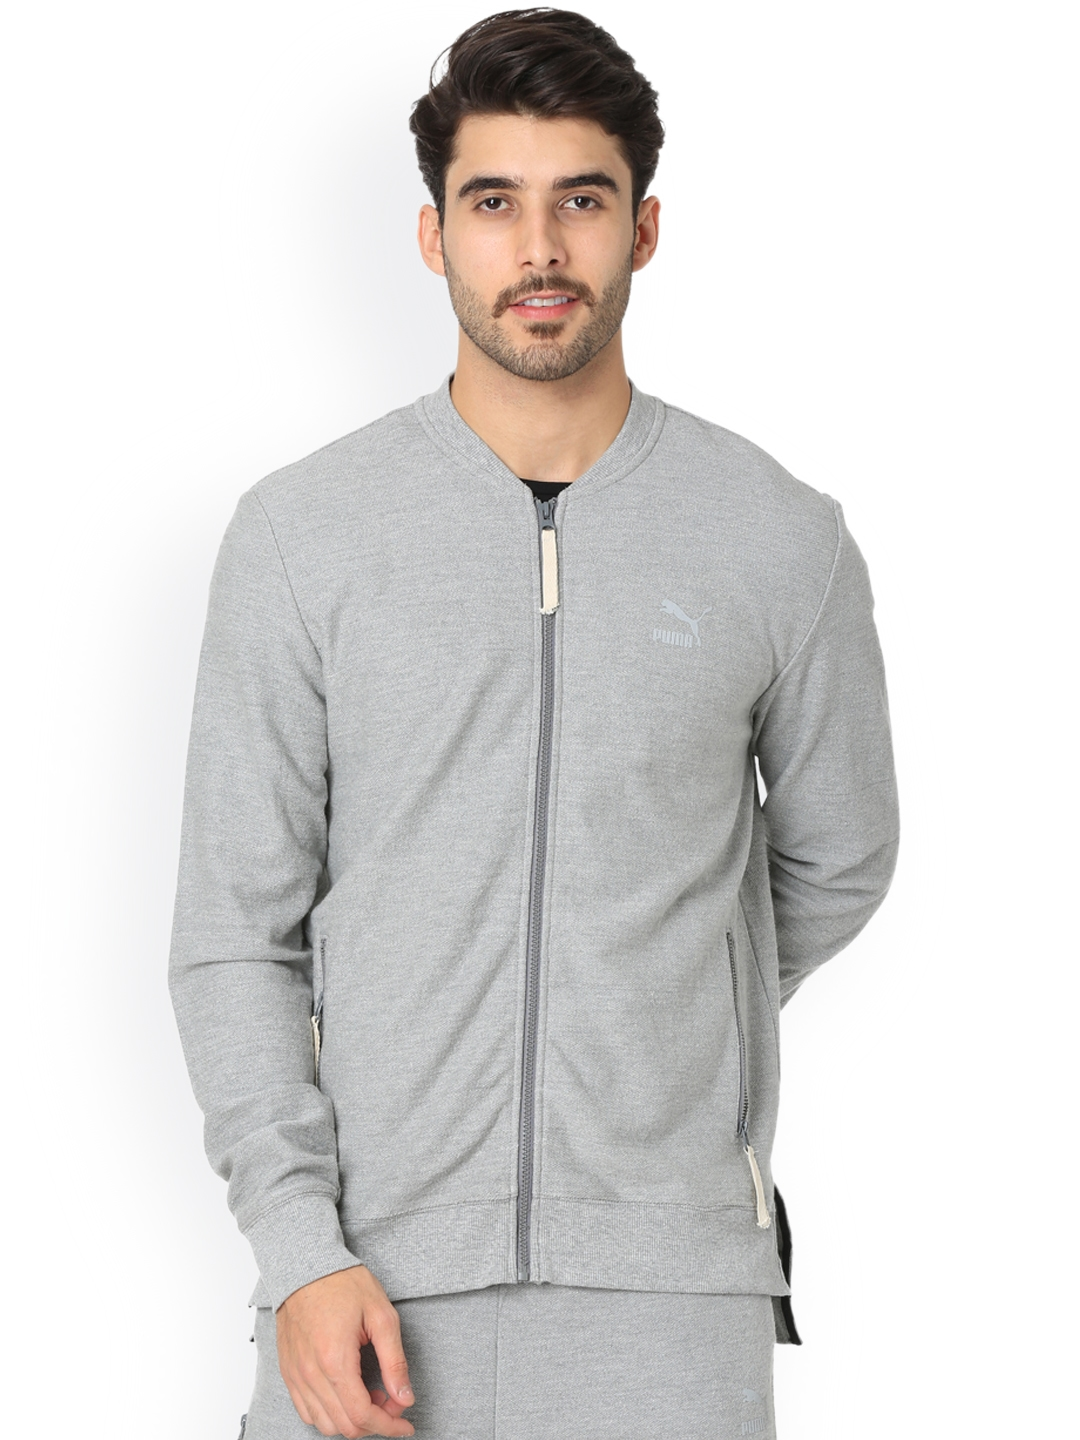 c3f1d6e6a Buy One8 X PUMA Men Grey Solid Sporty Jacket - Jackets for Men ...